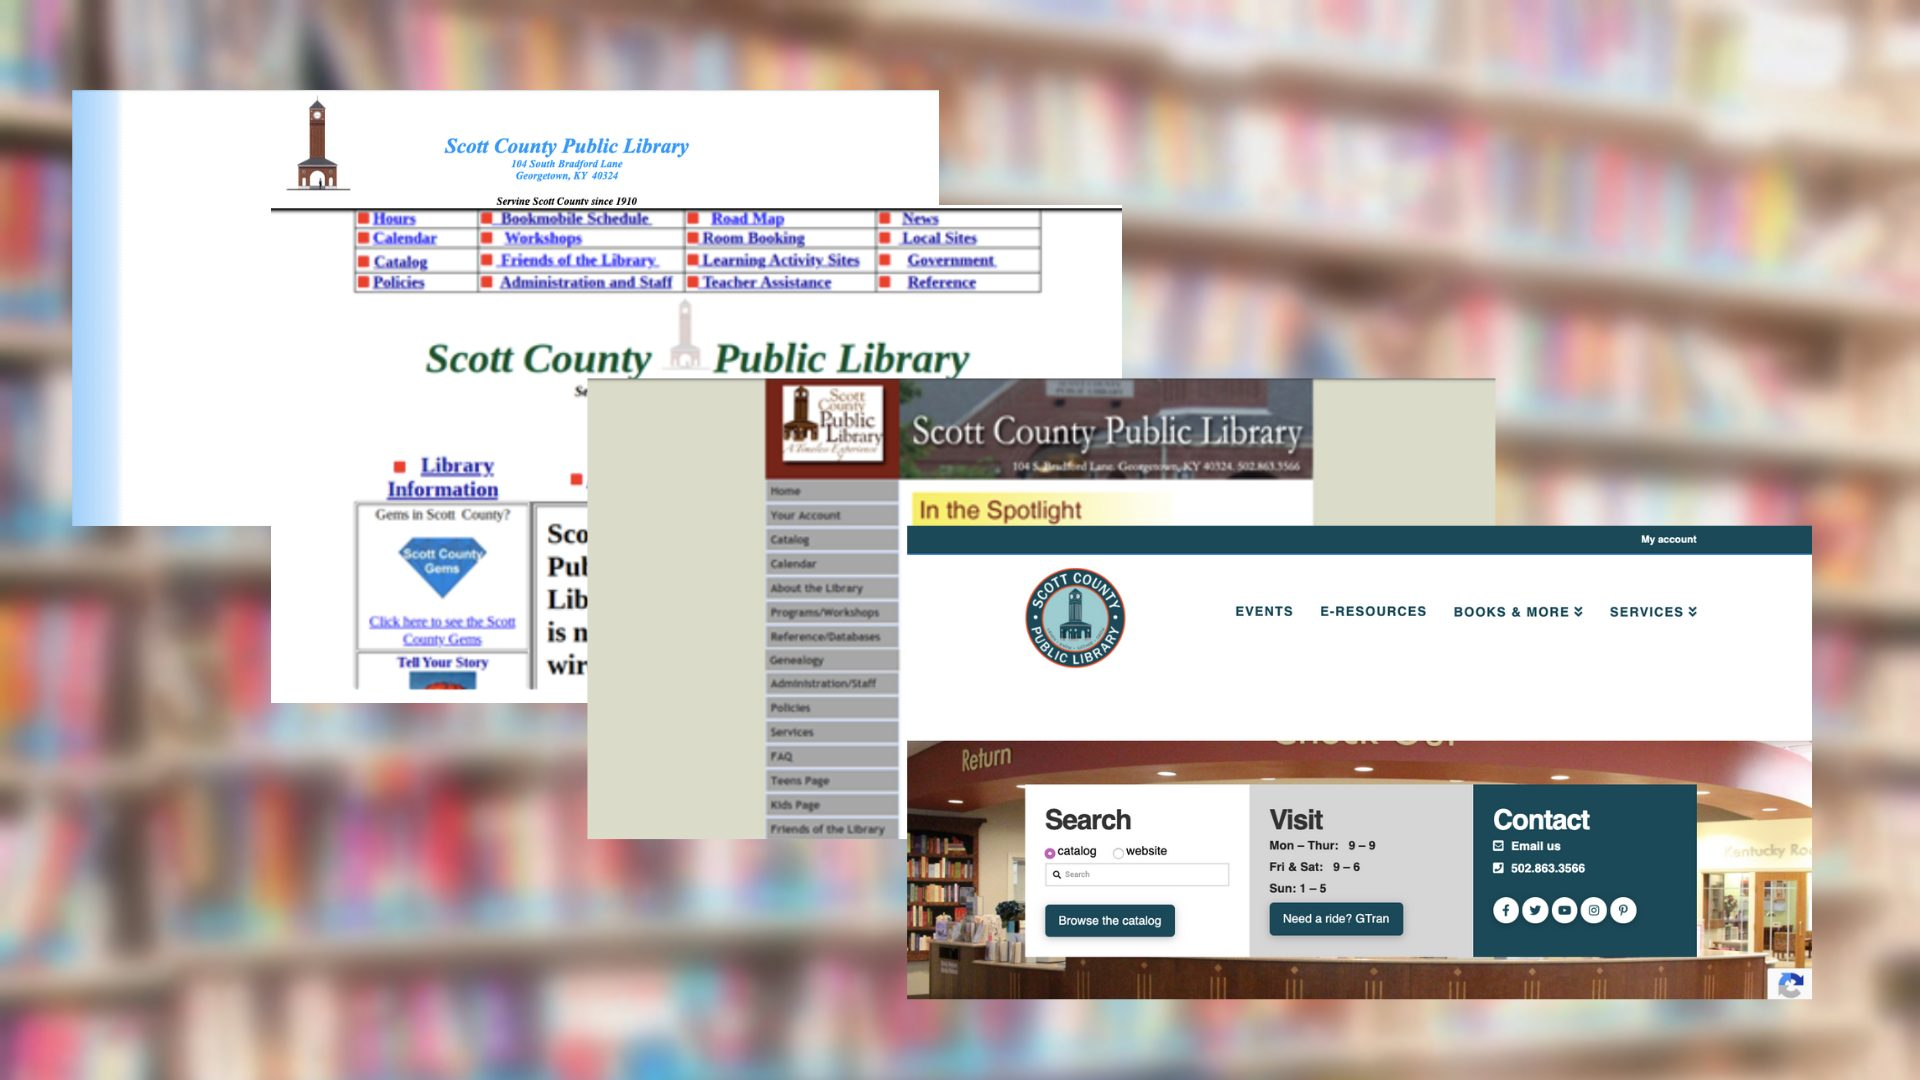 SCPL Websites from the Past